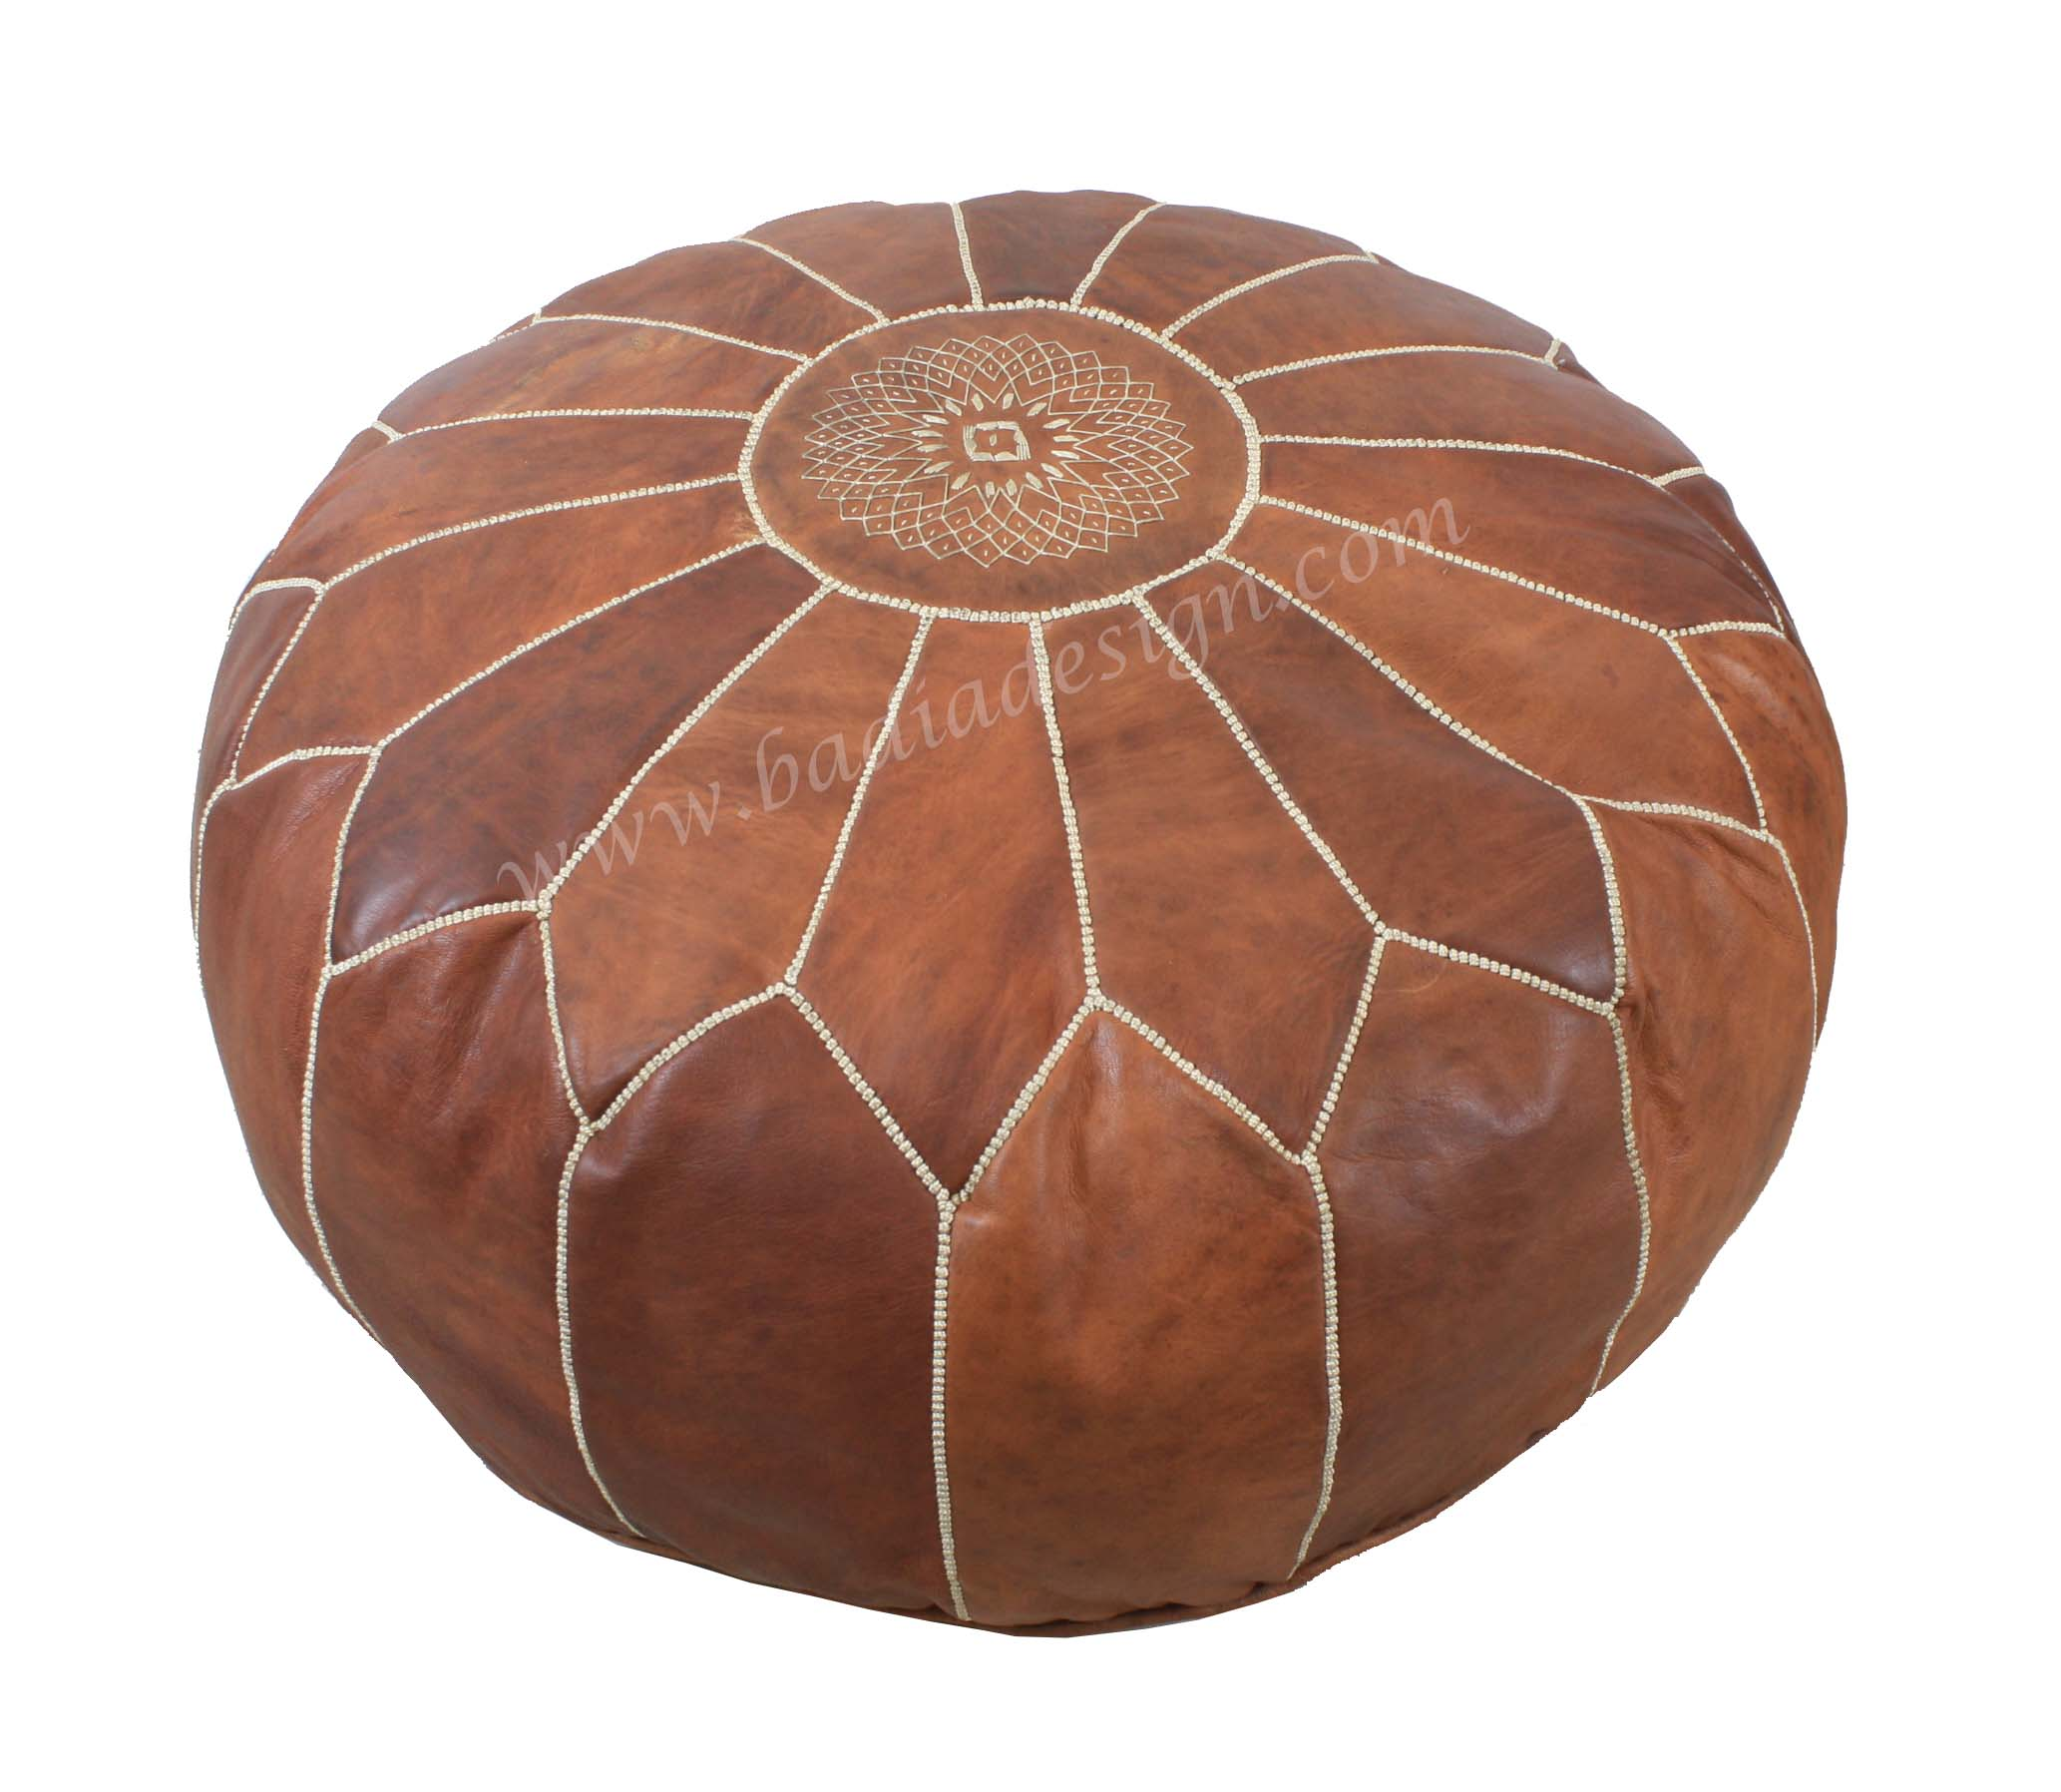 Moroccan Round Leather Pouf by Badia Design Inc.